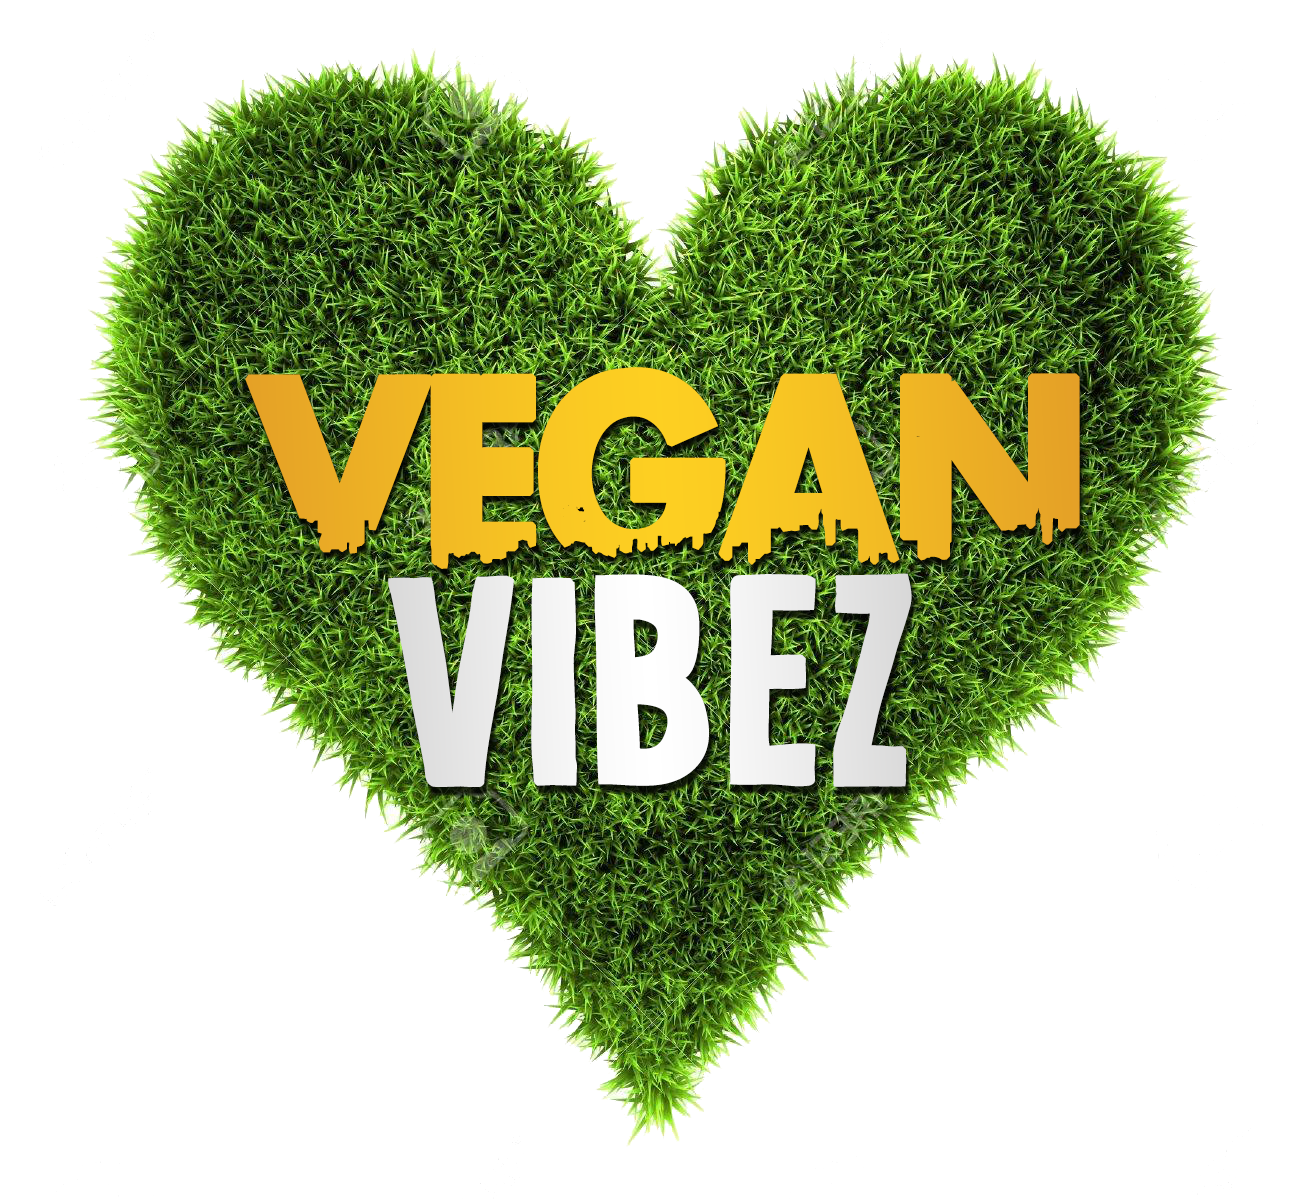 Vegan Vibez Announces Third Annual Vegan Vibez Festival At Aveva Stadium